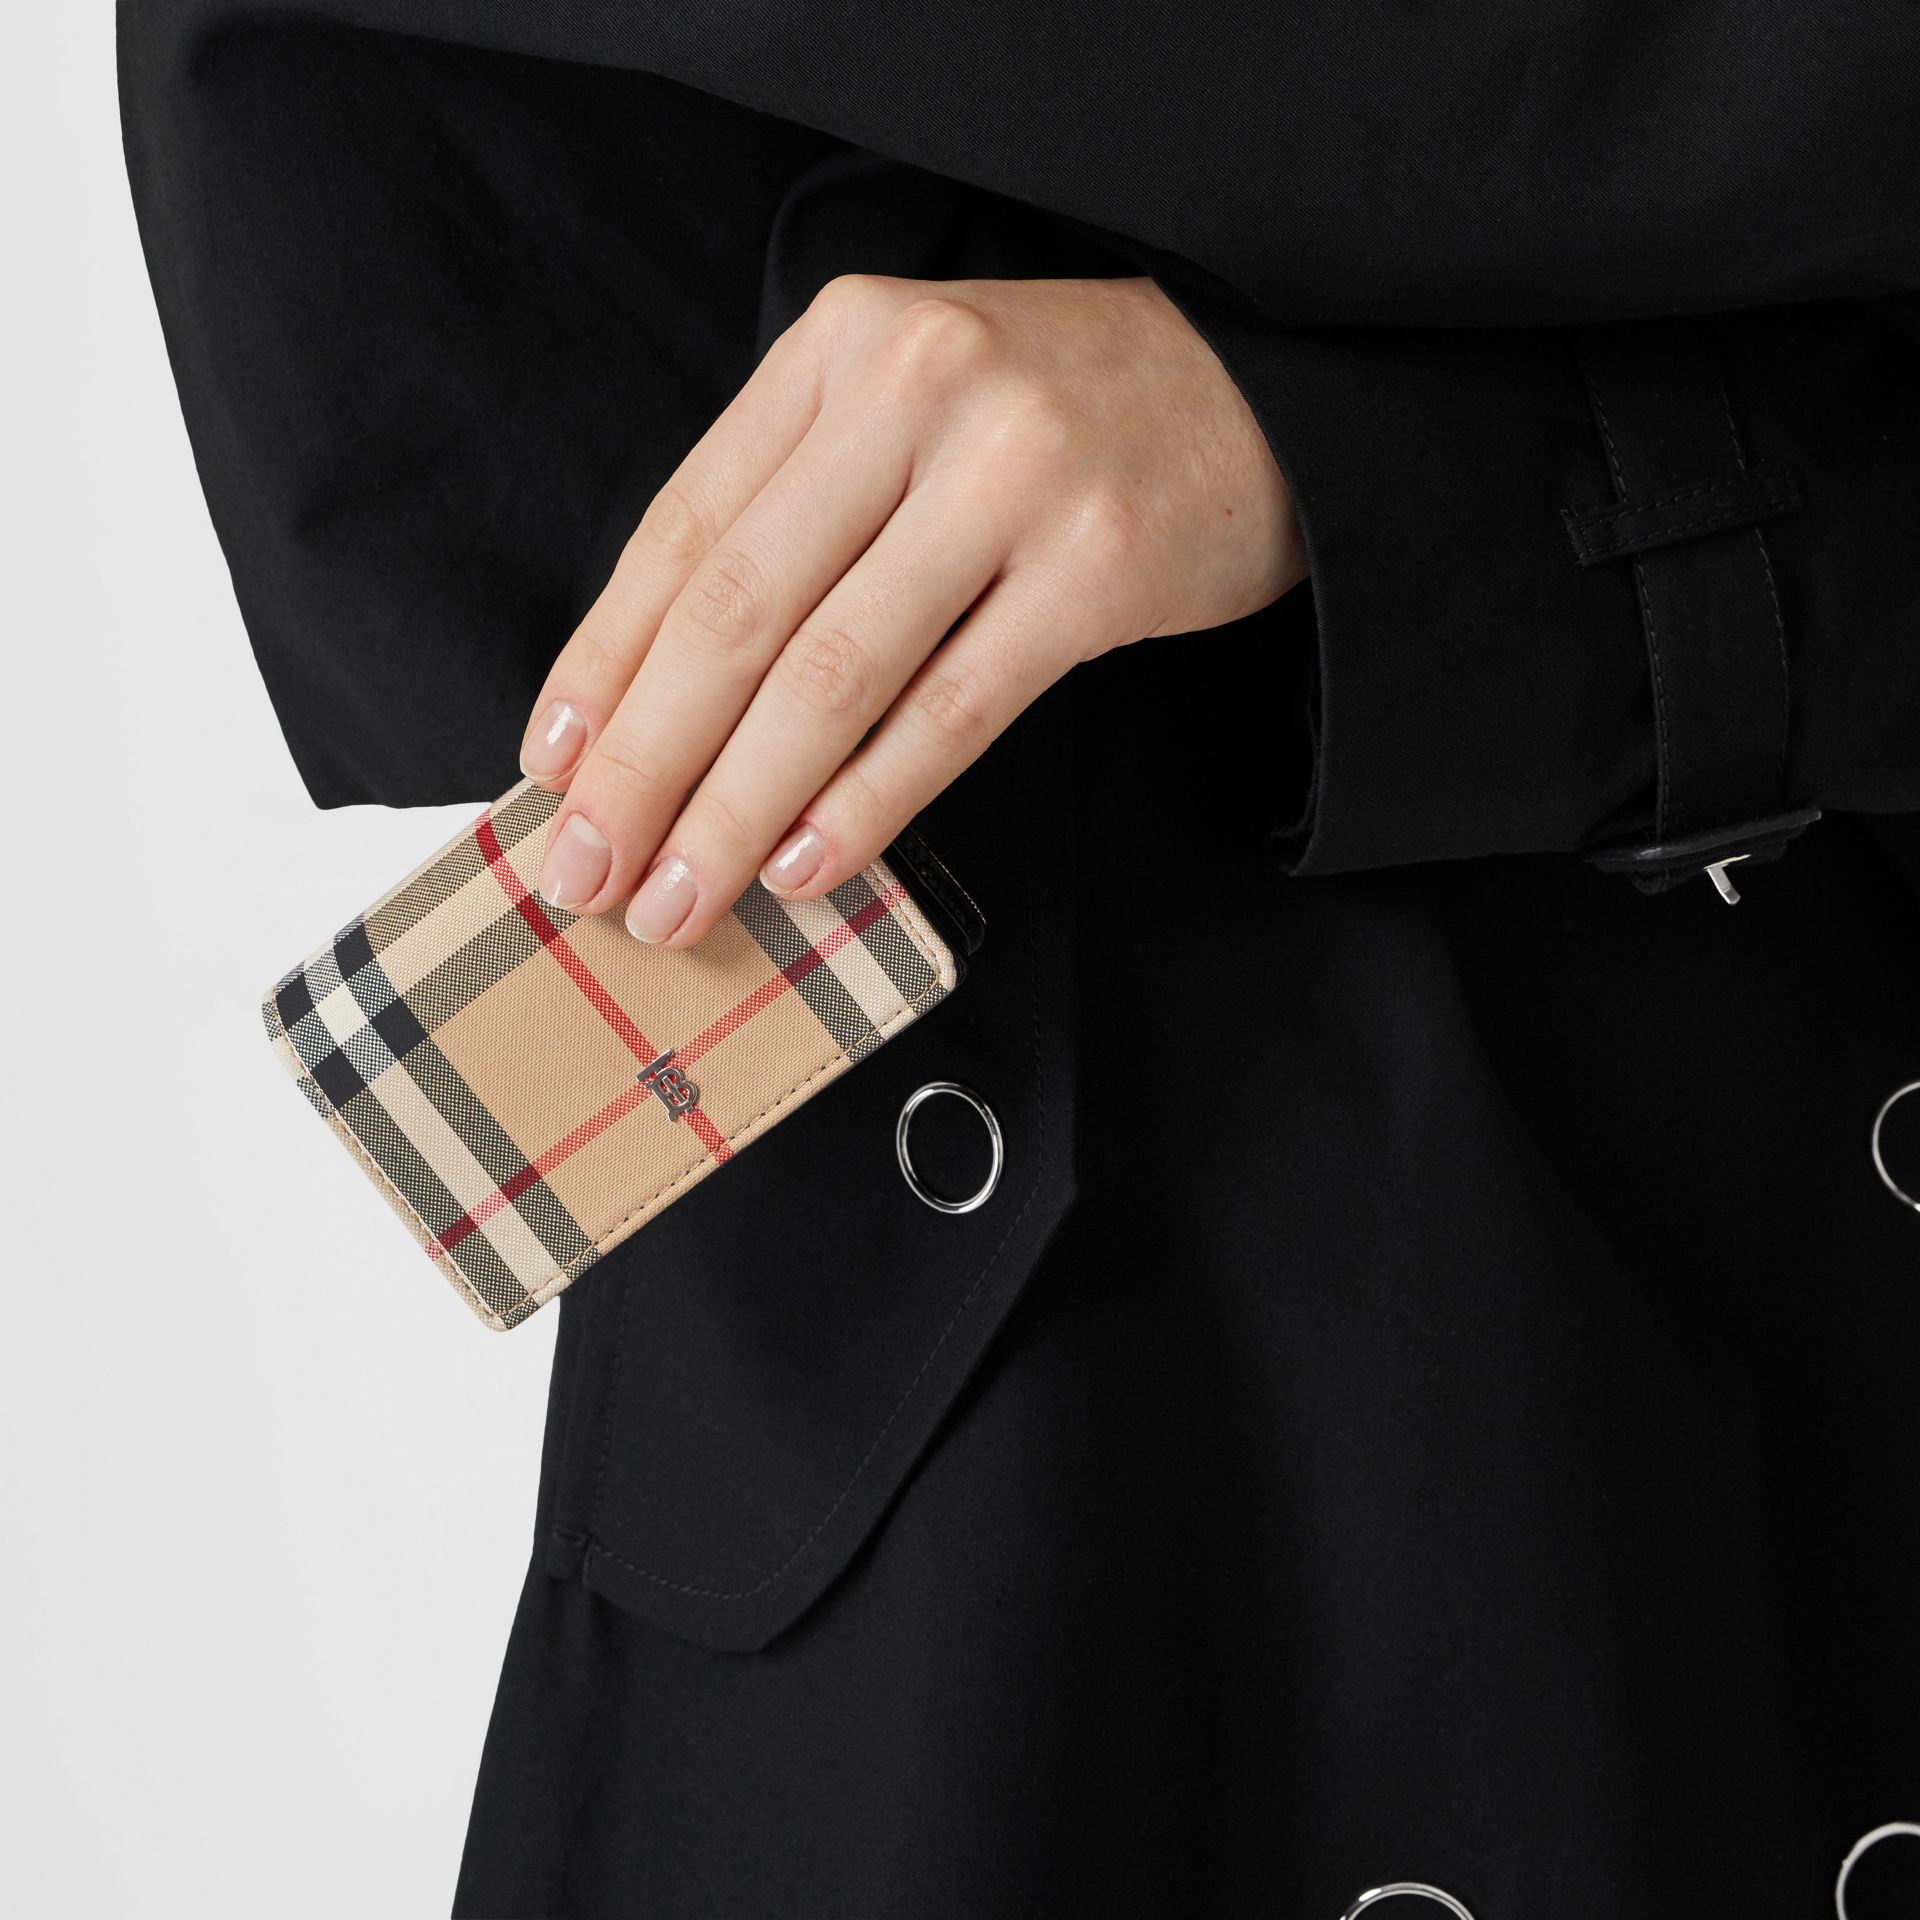 Vintage Check Card Case with Detachable Strap in Black - Women | Burberry - gallery image 2